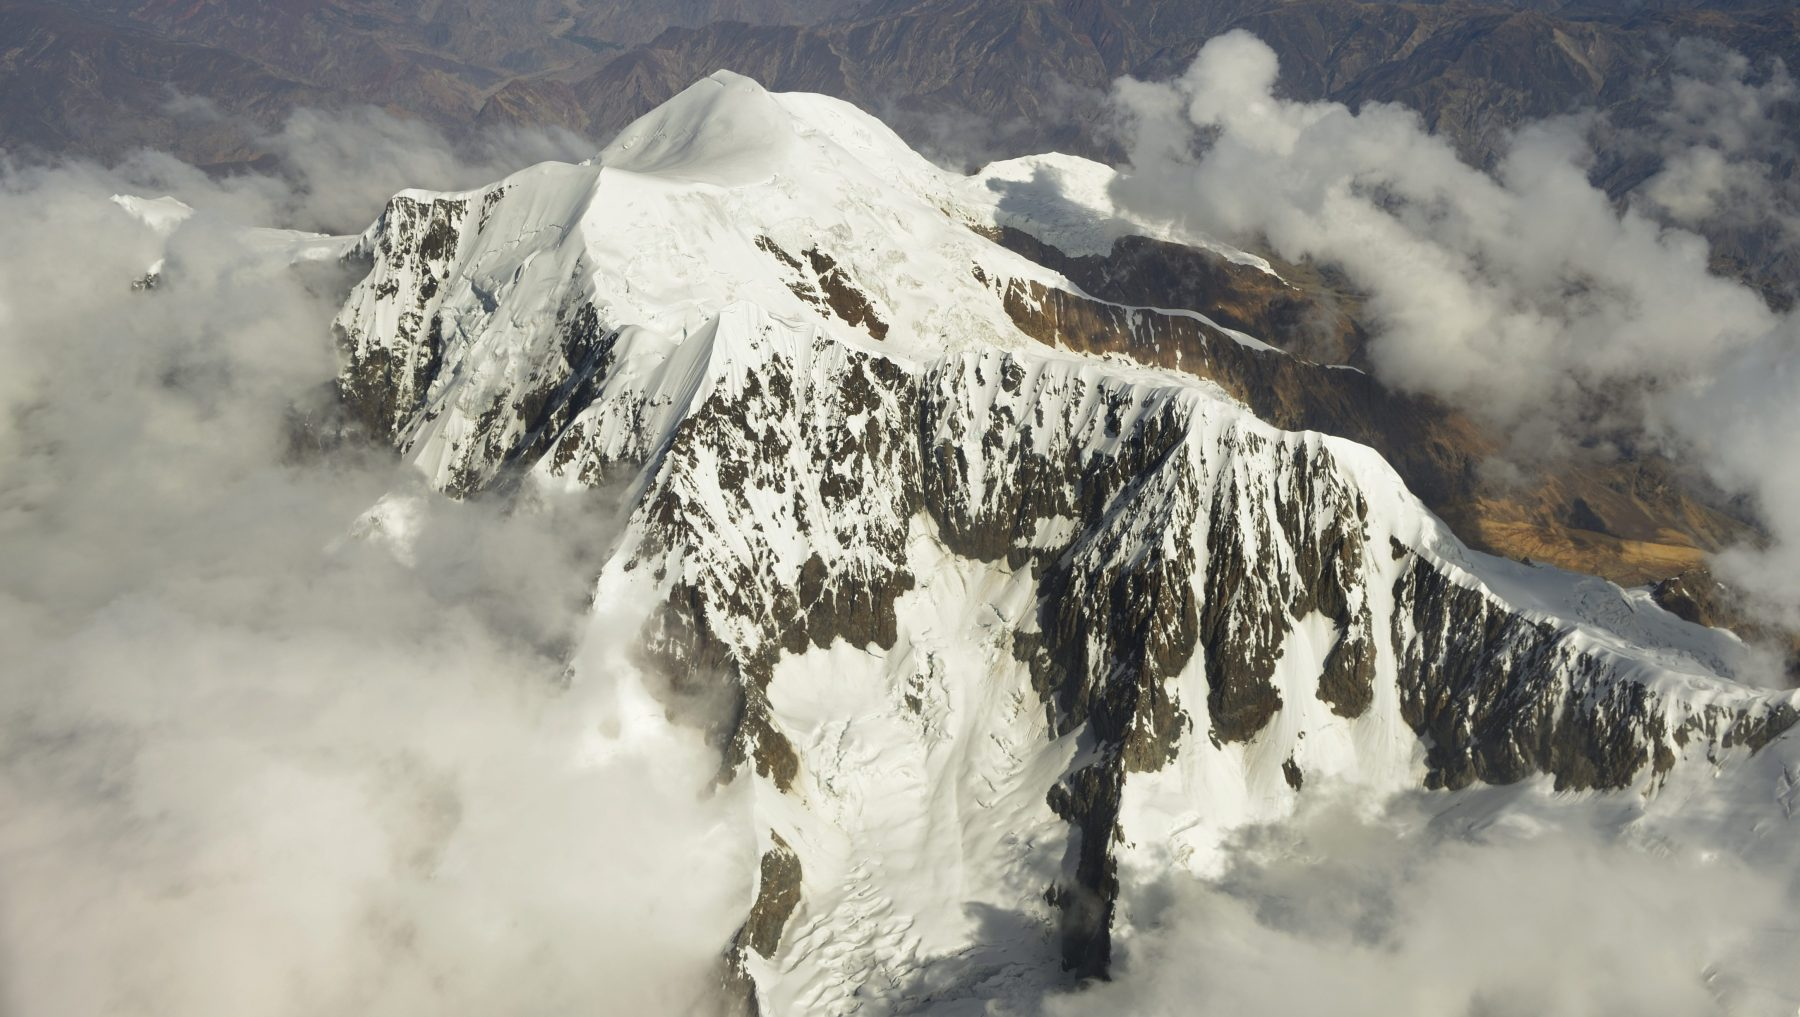 Peak of the Illimani Glacier as seen from an aircraft, near La Paz, Bolivia